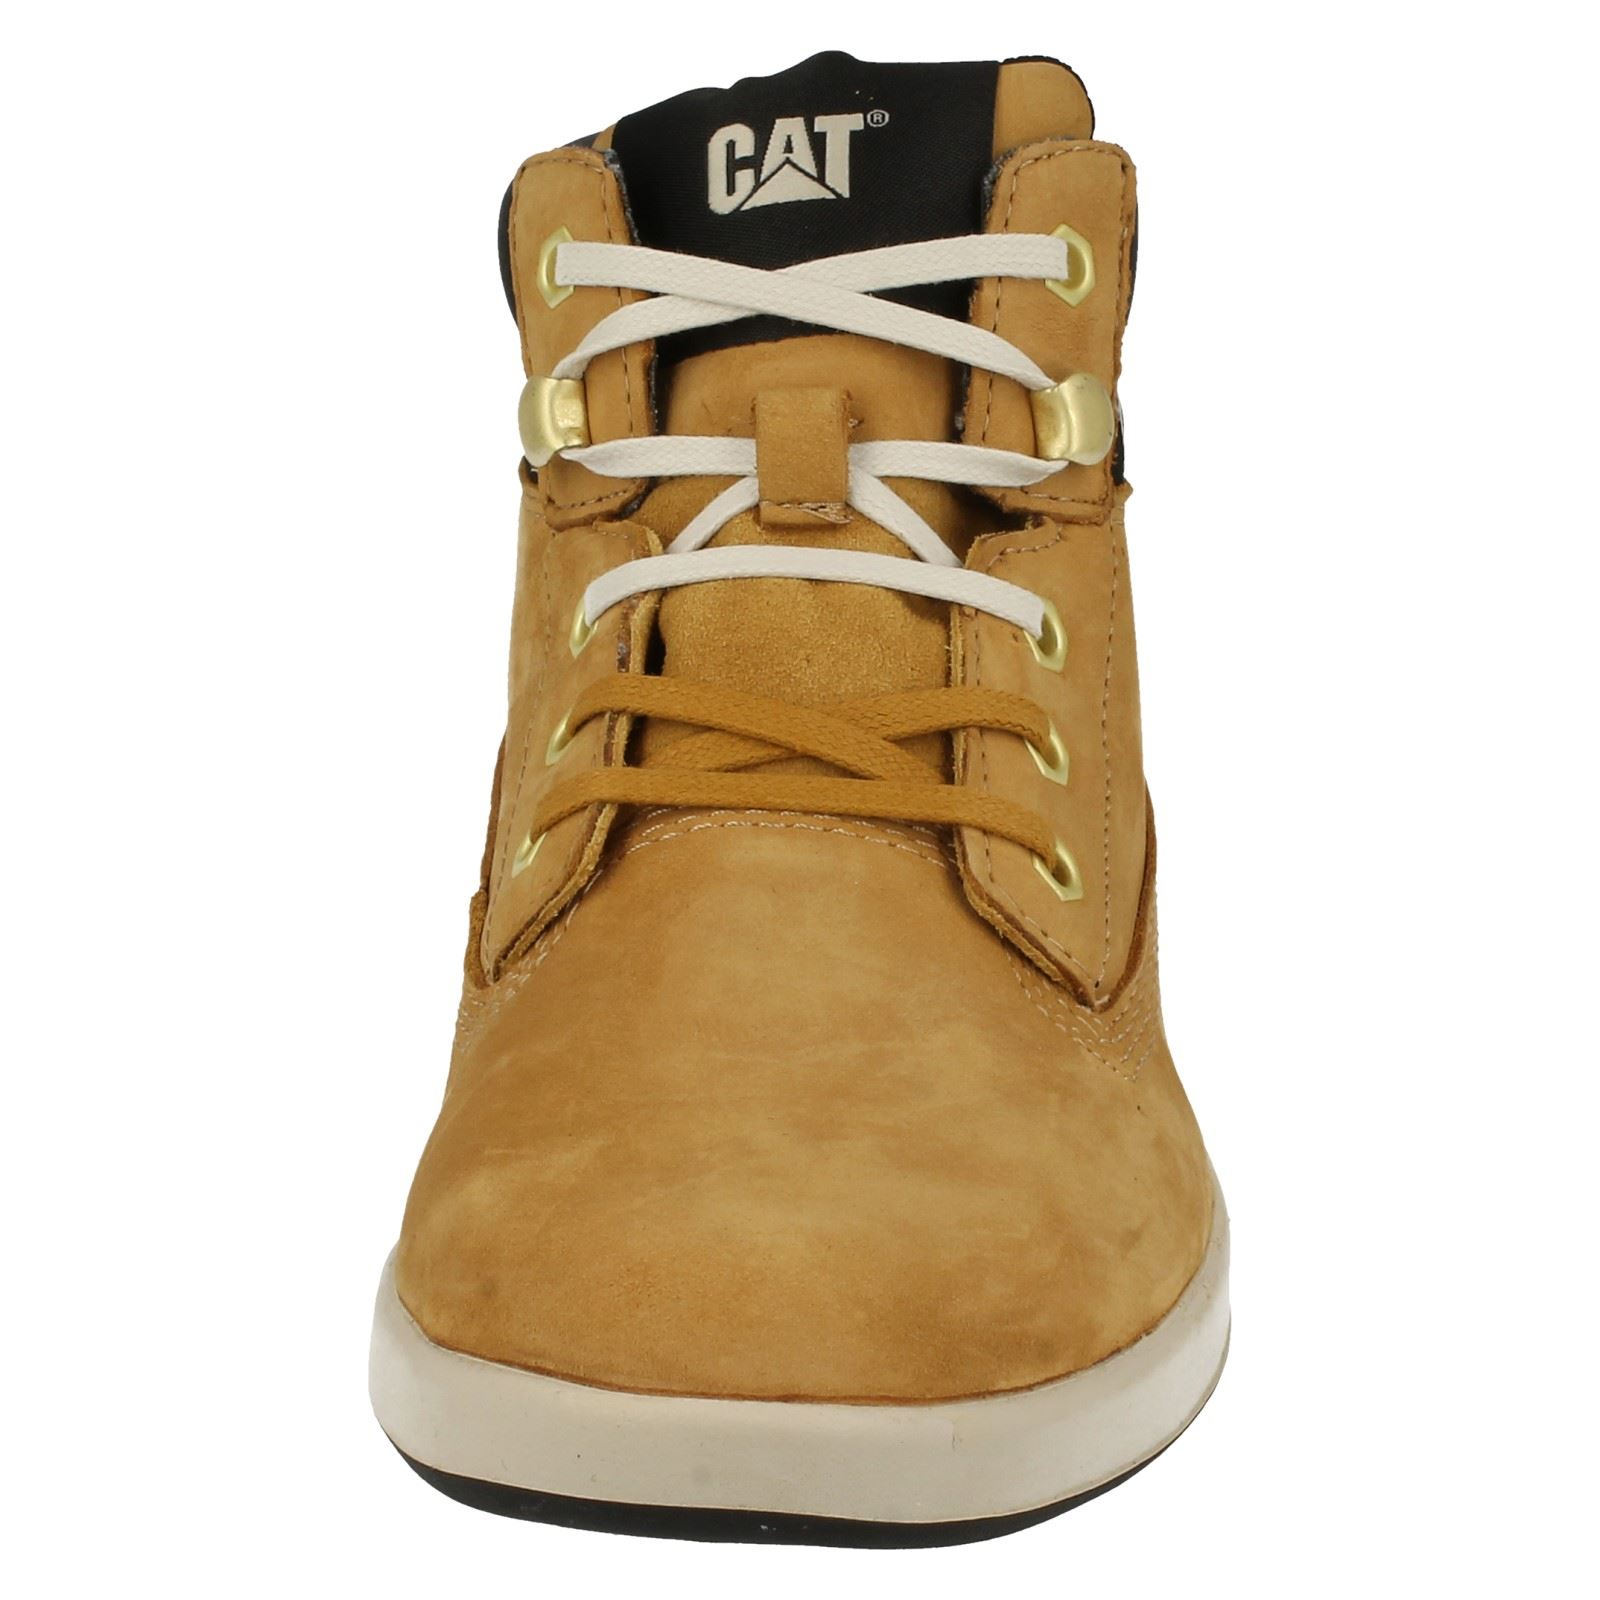 cat ankle boots poe ebay